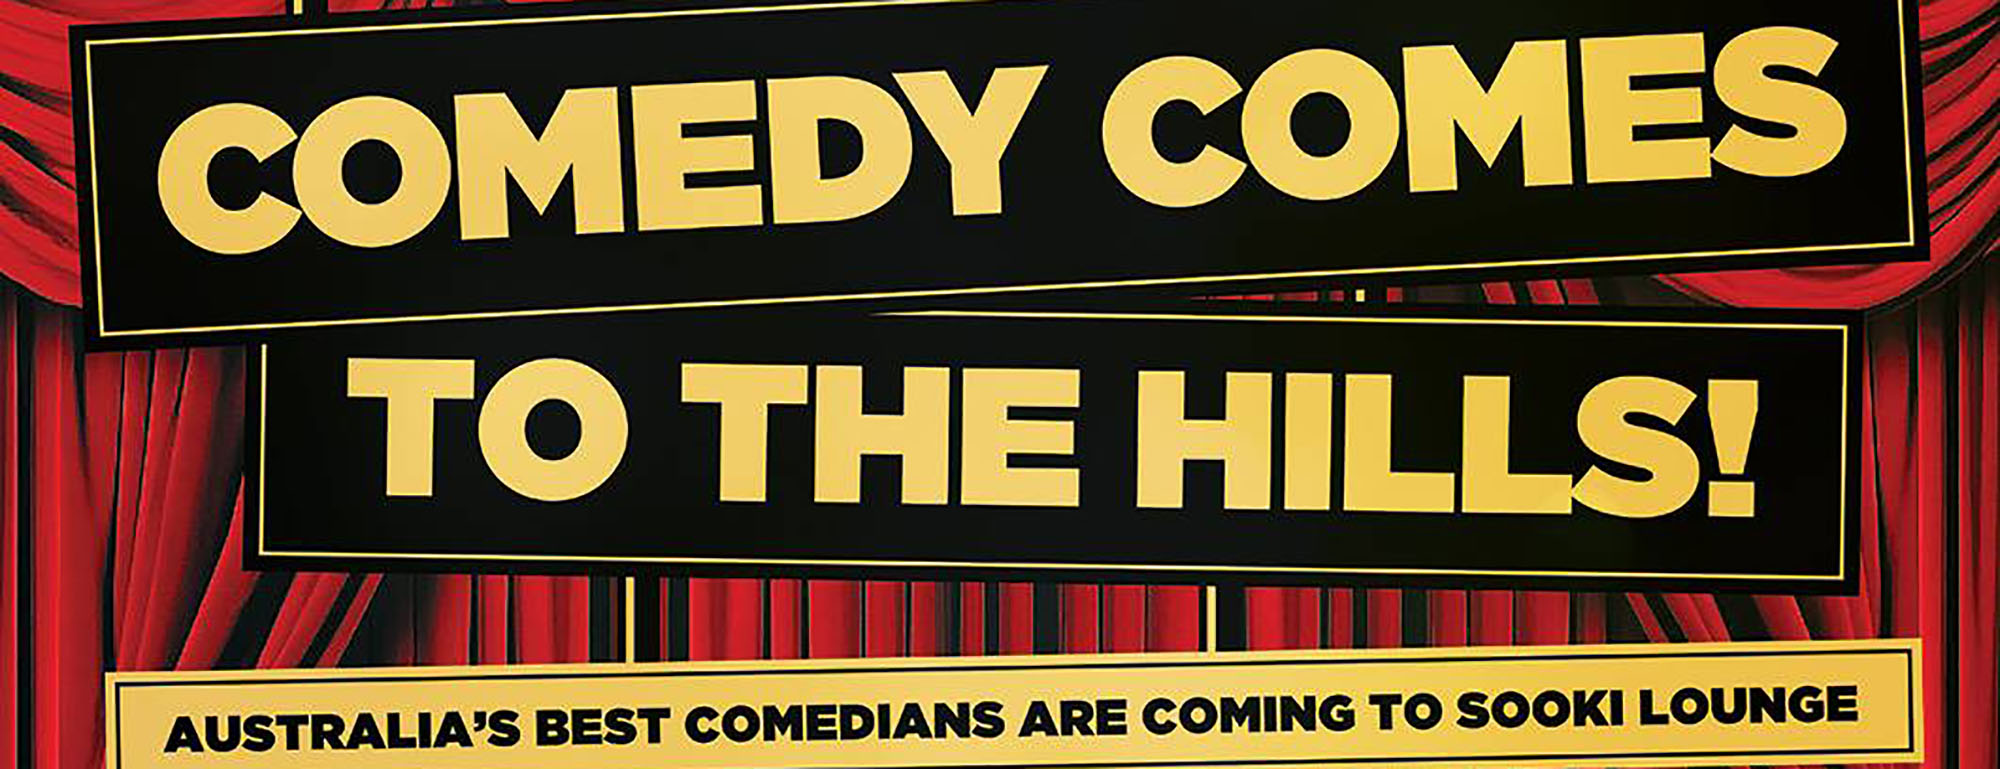 comedy-banner